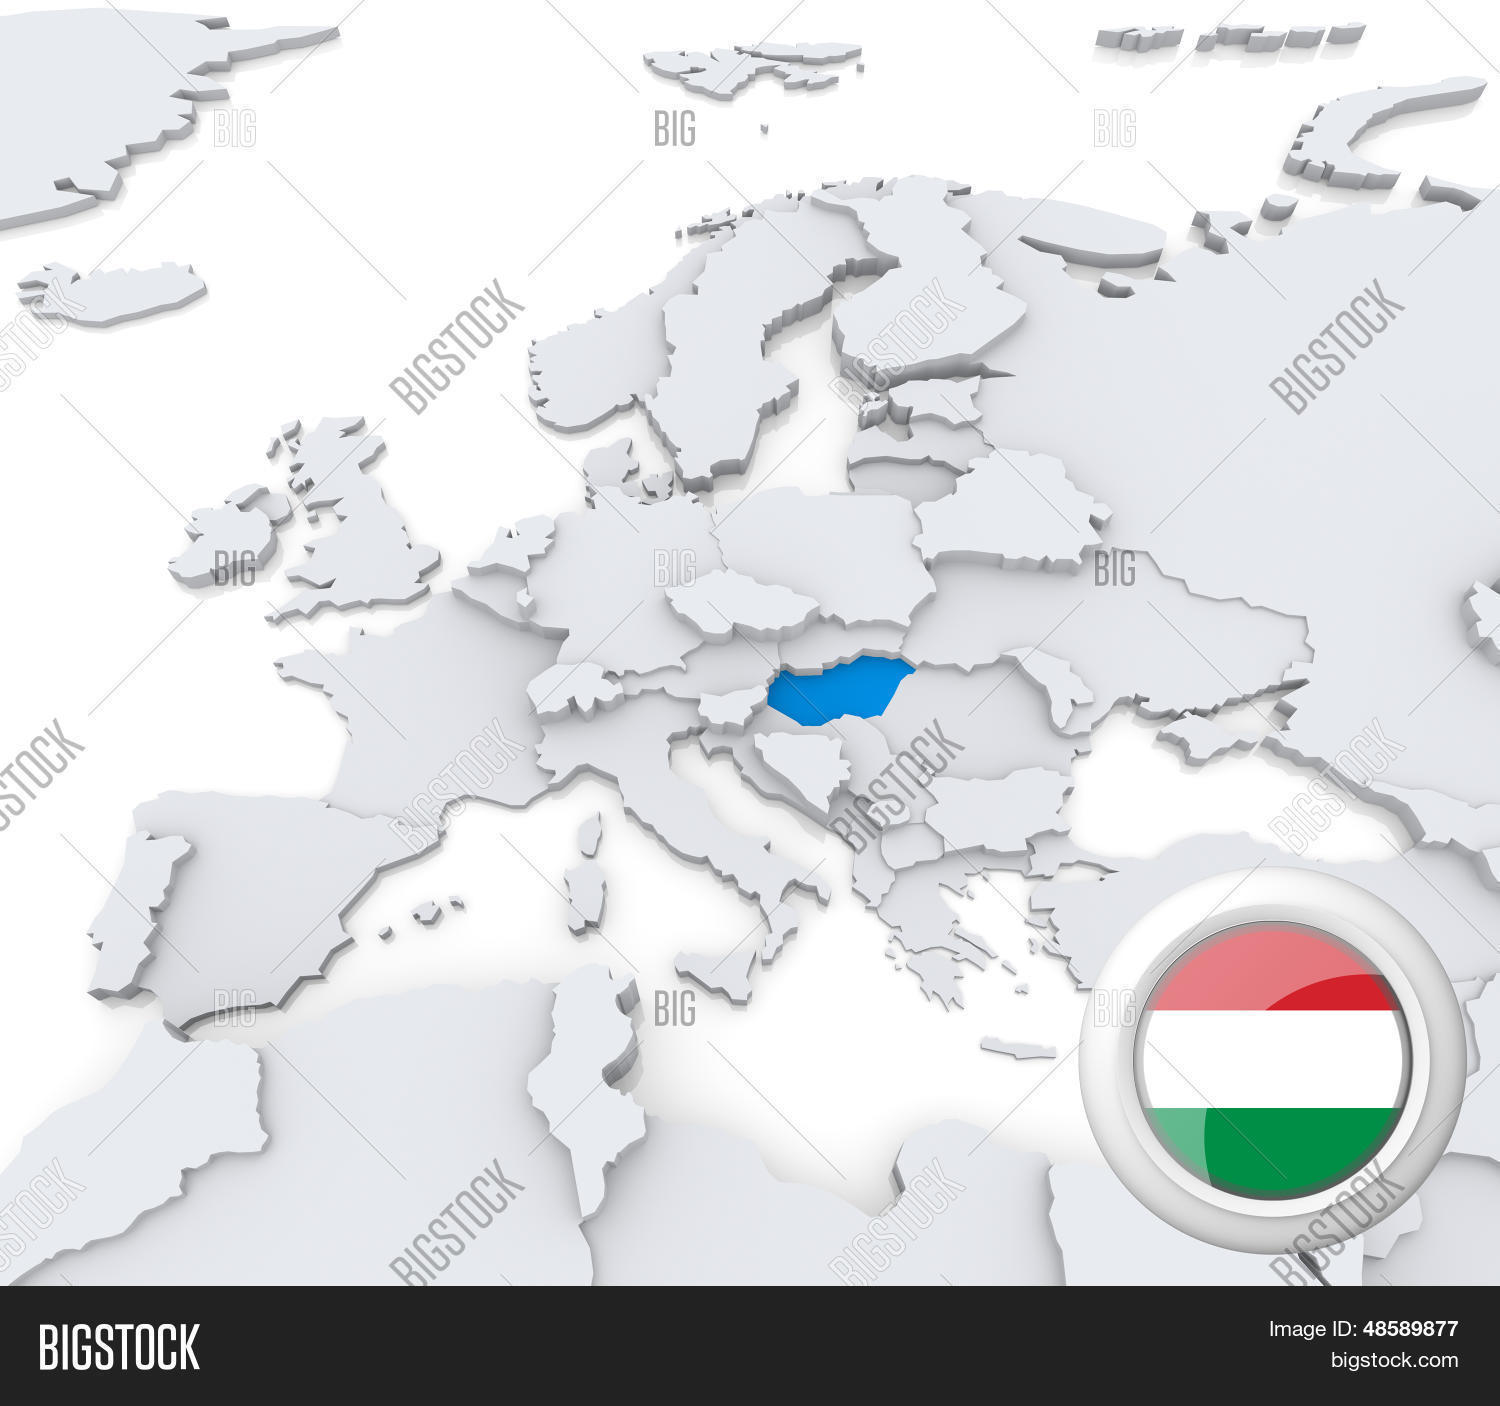 Picture of: Hungary On Map Europe Image Photo Free Trial Bigstock